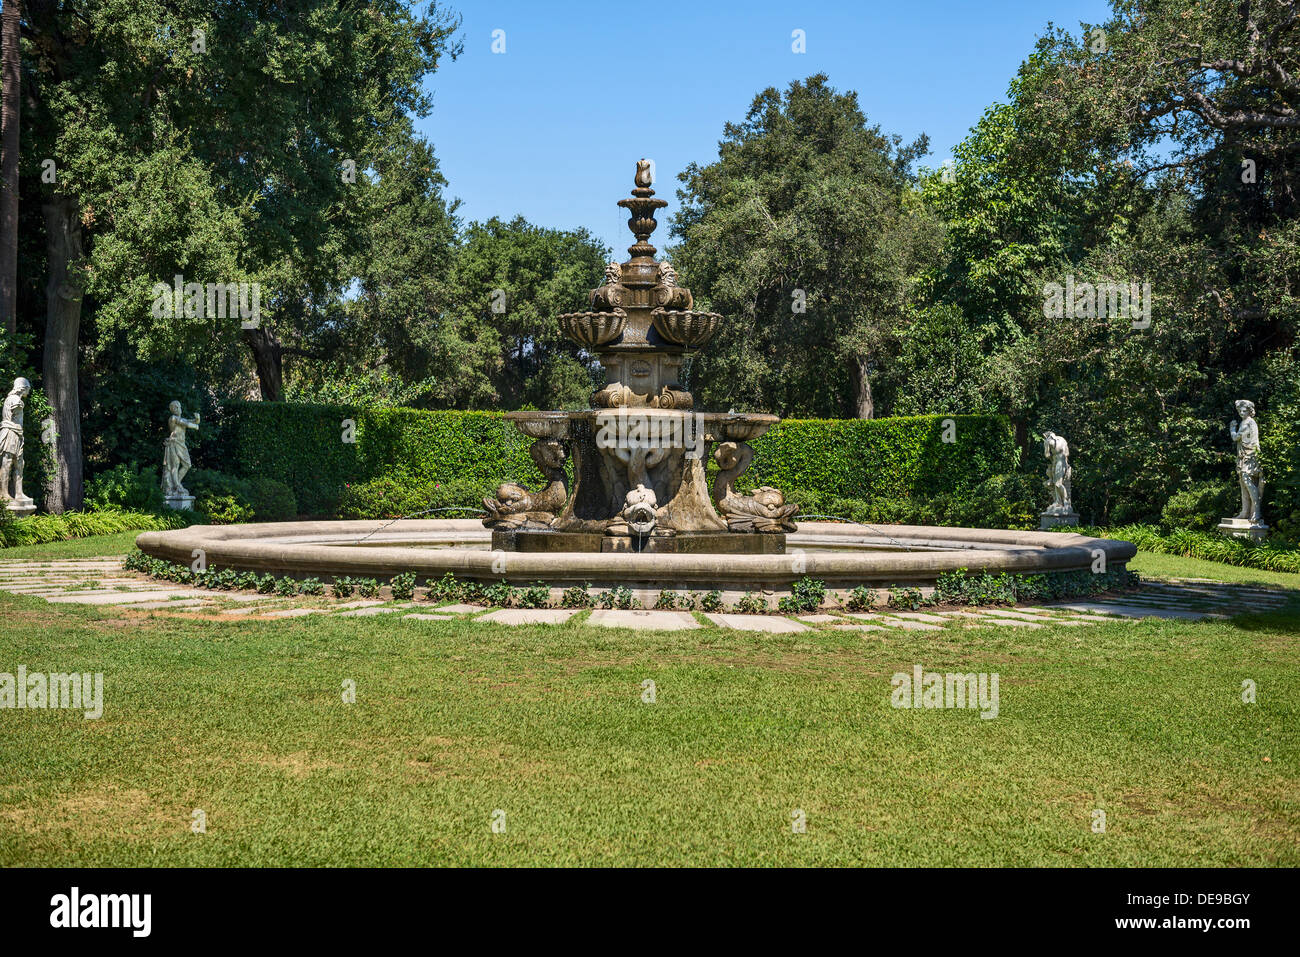 Iconic Large Fountain At The Huntington Library And Botanical Stock Photo Royalty Free Image